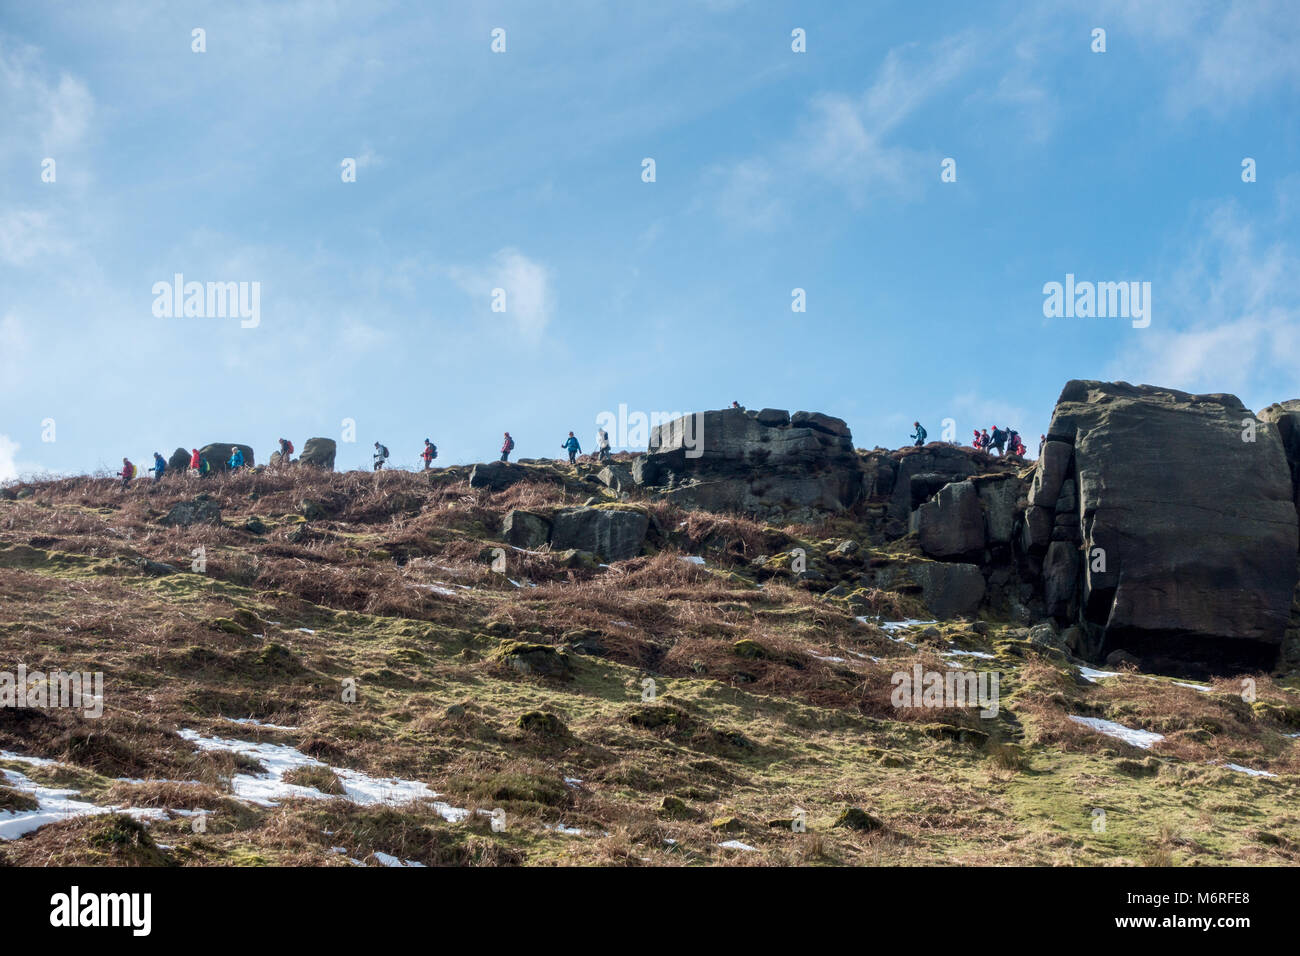 Ilkley Moor, West Yorkshire, UK. 6th March 2018. UK weather: Big group of people out in force, enjoying an organised - Stock Image